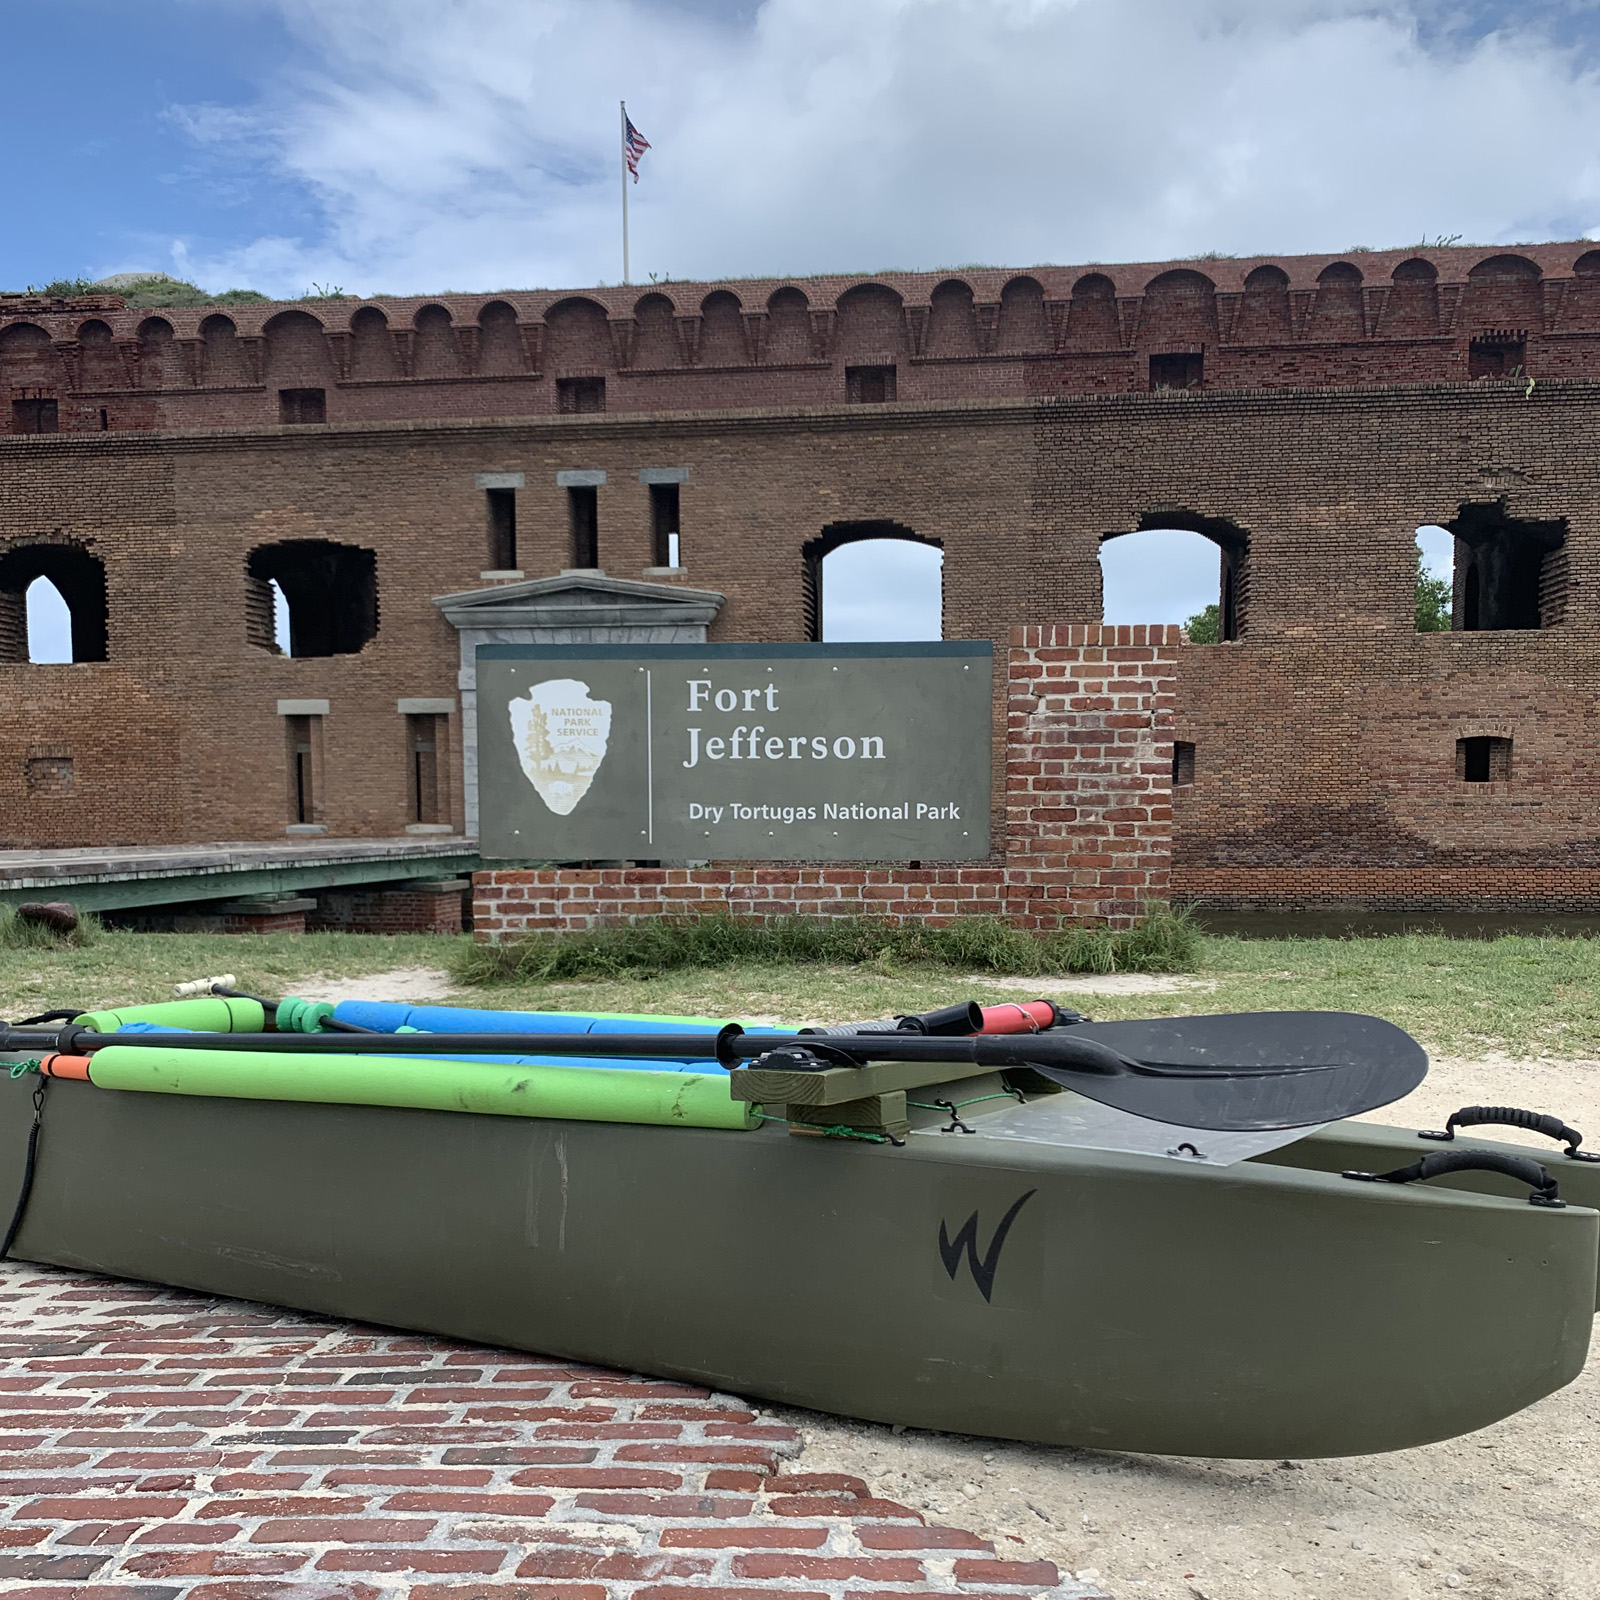 W500 fishing kayak at Fort Jefferson, Dry Tortugas islands